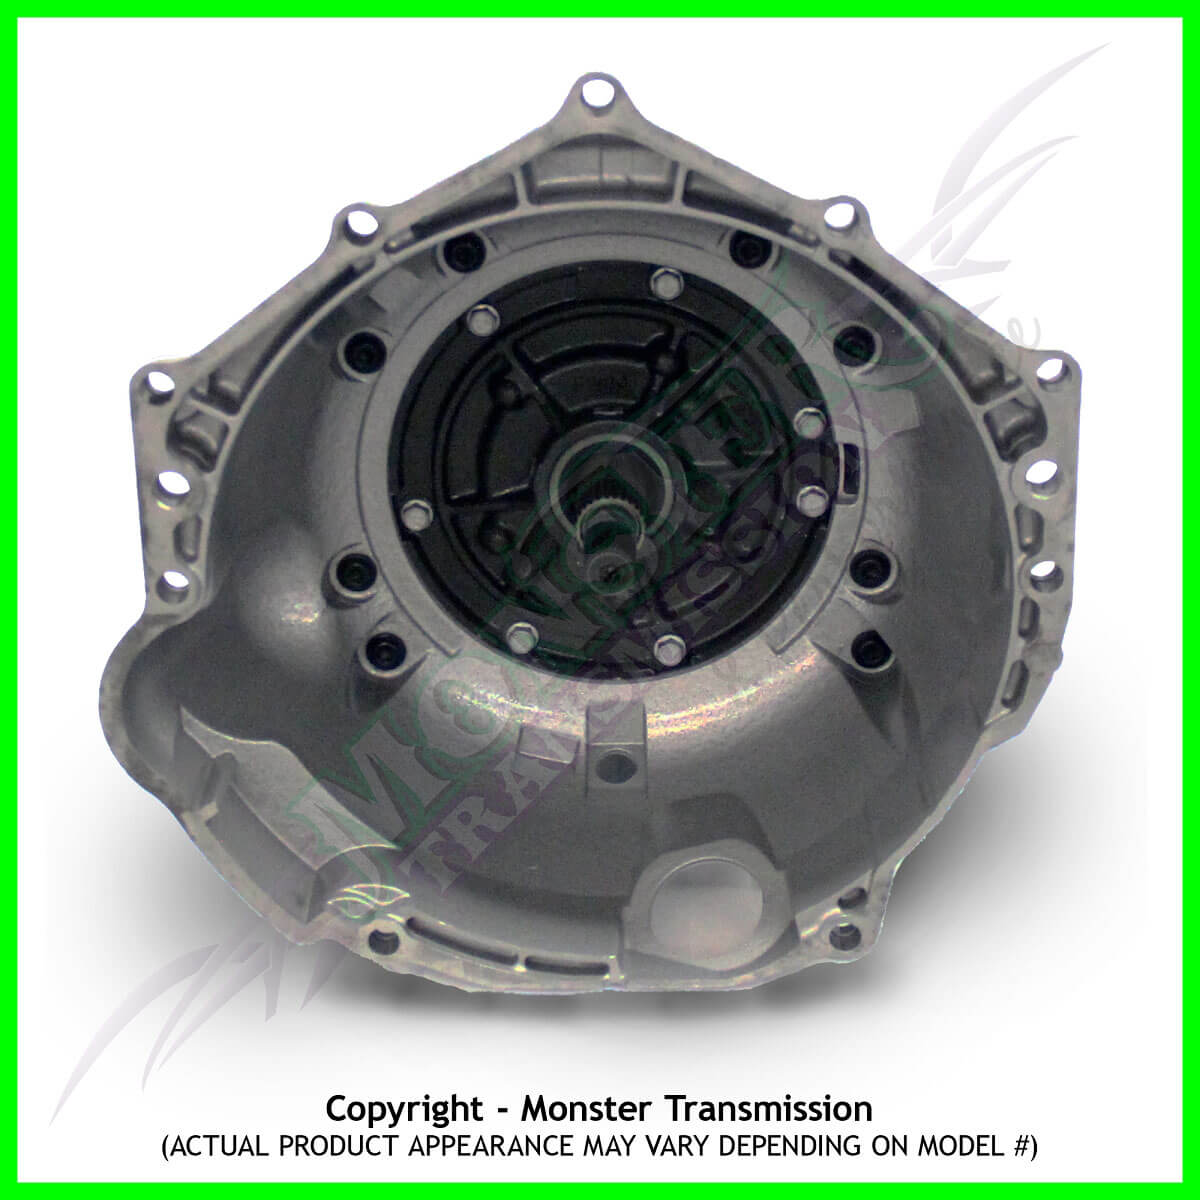 Tahoe 2003 chevy tahoe transmission : 4L60E 4L65E Transmission Remanufactured 4X4 Heavy Duty 4.8 5.3 LS1 ...